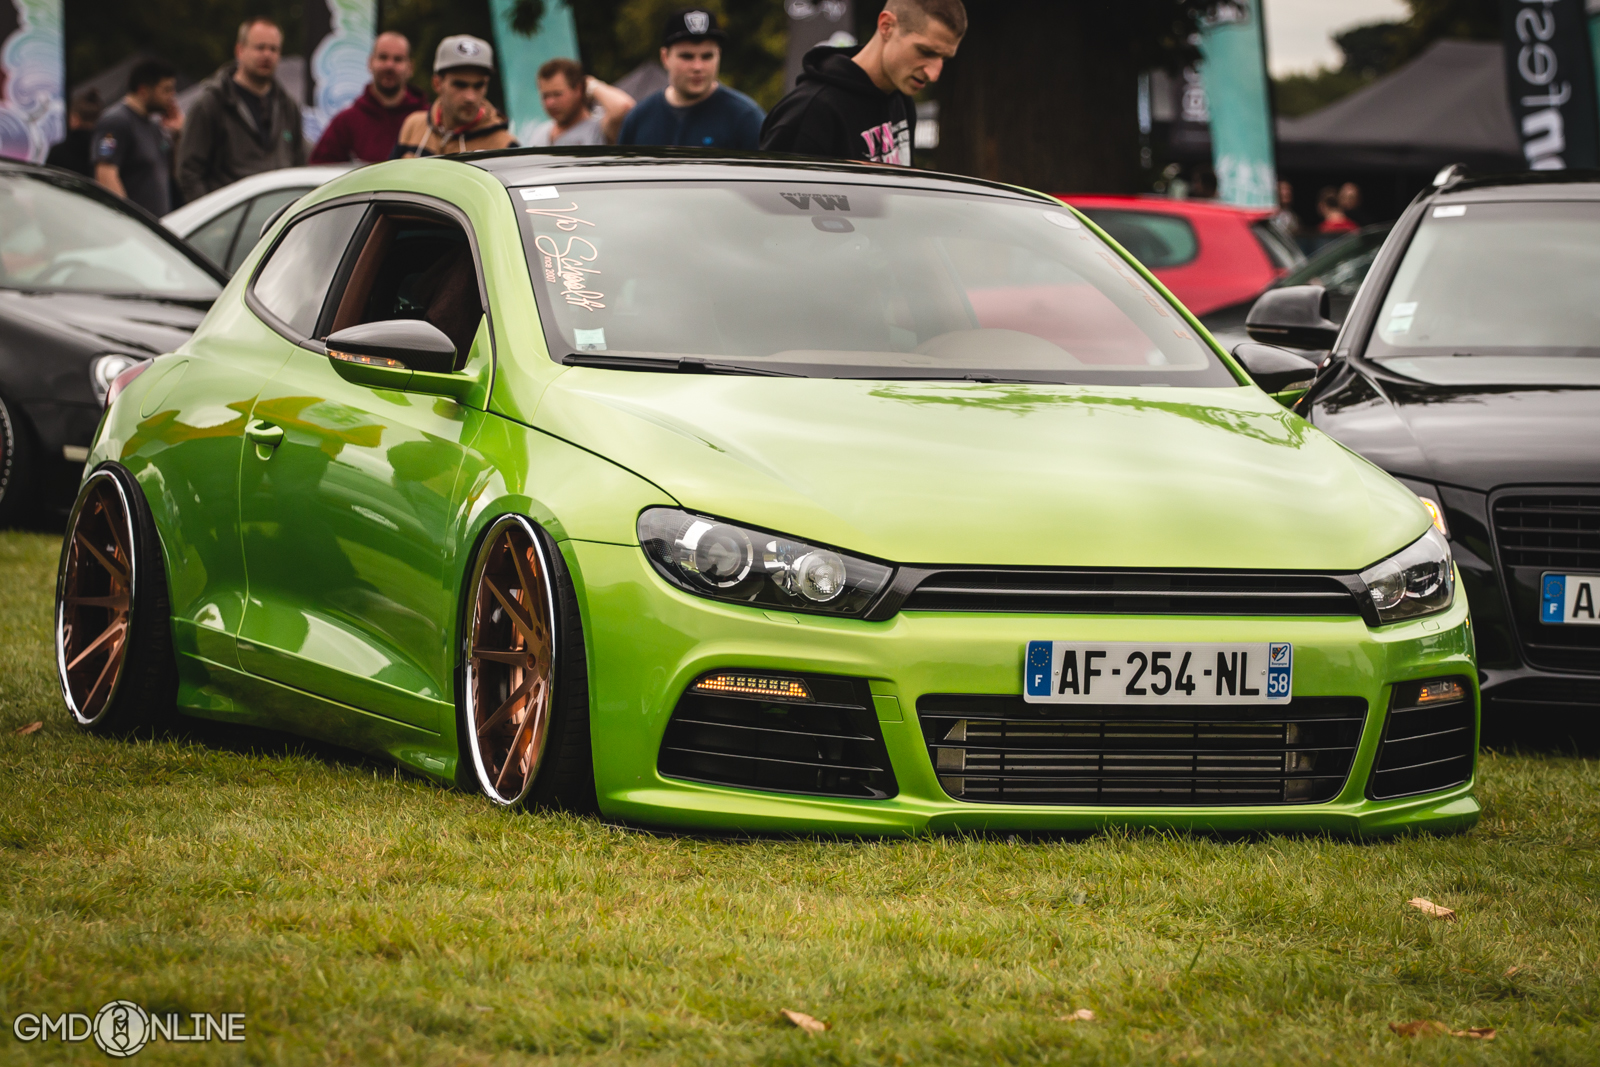 Vip Cars Hd Wallpaper Extremely Clean Vw Scirocco Stancenation Form